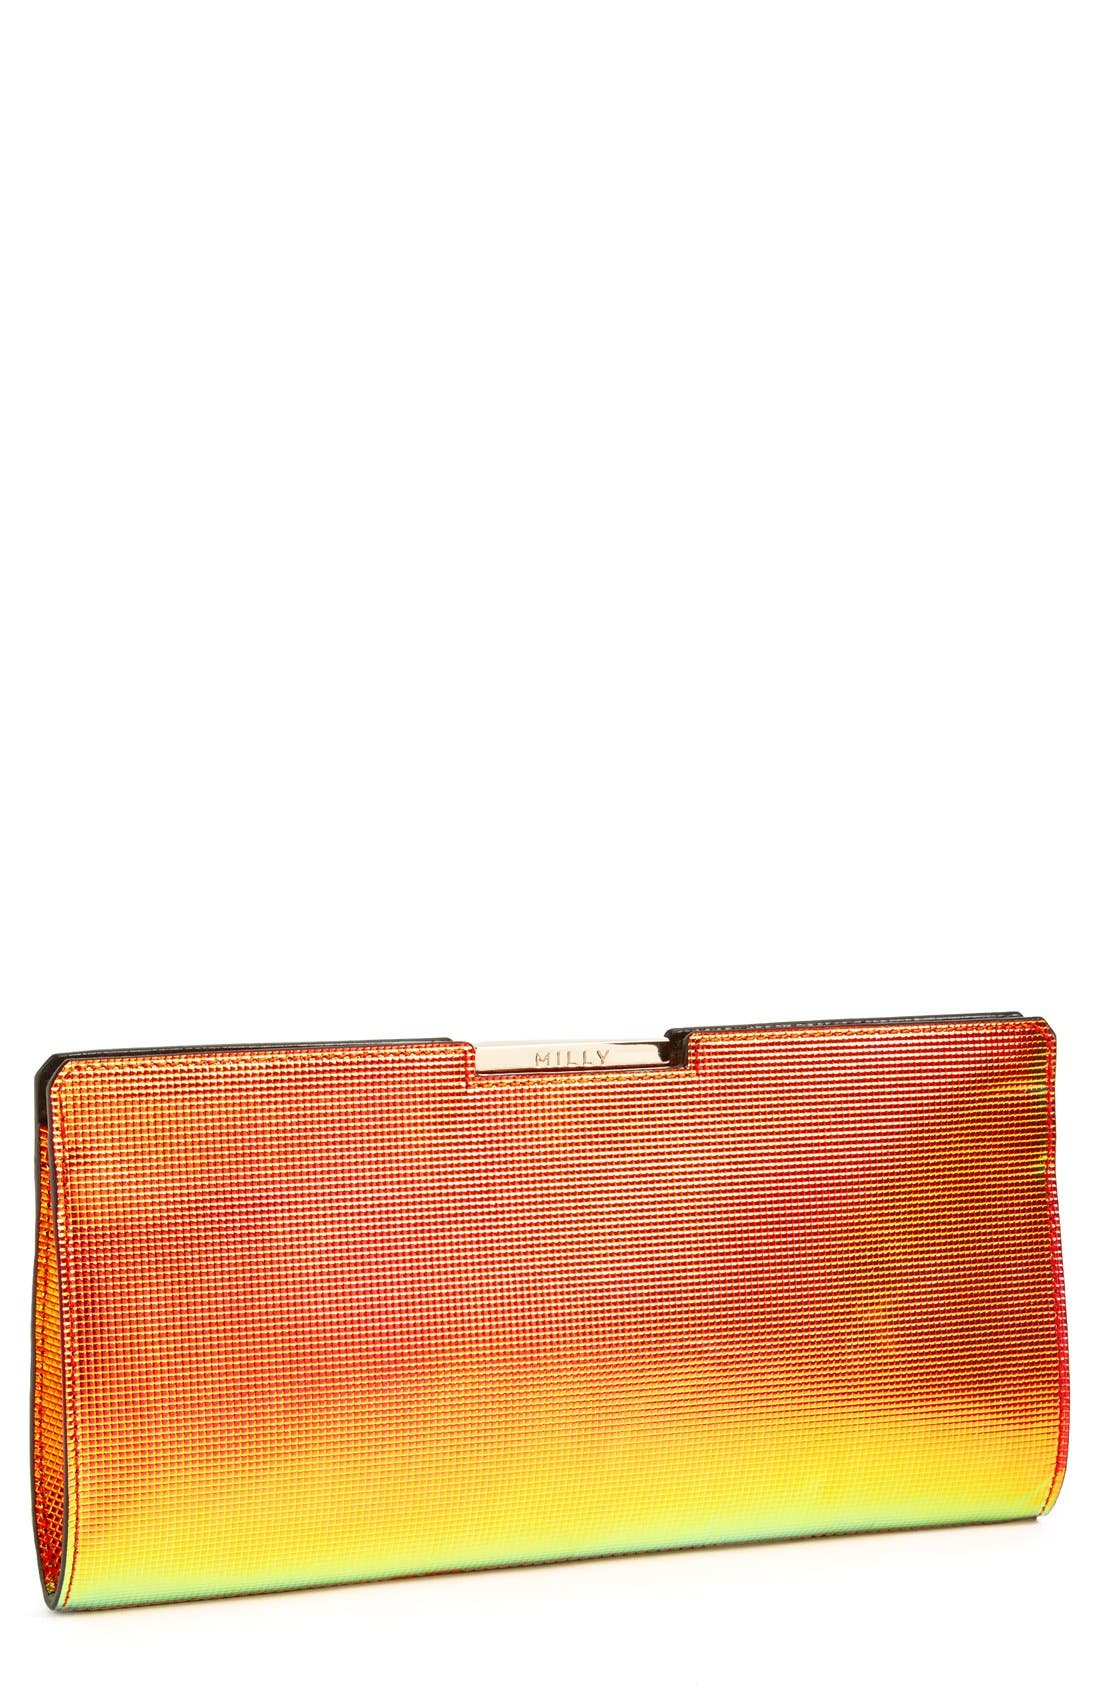 Main Image - Milly 'Crosby' Iridescent Frame Clutch